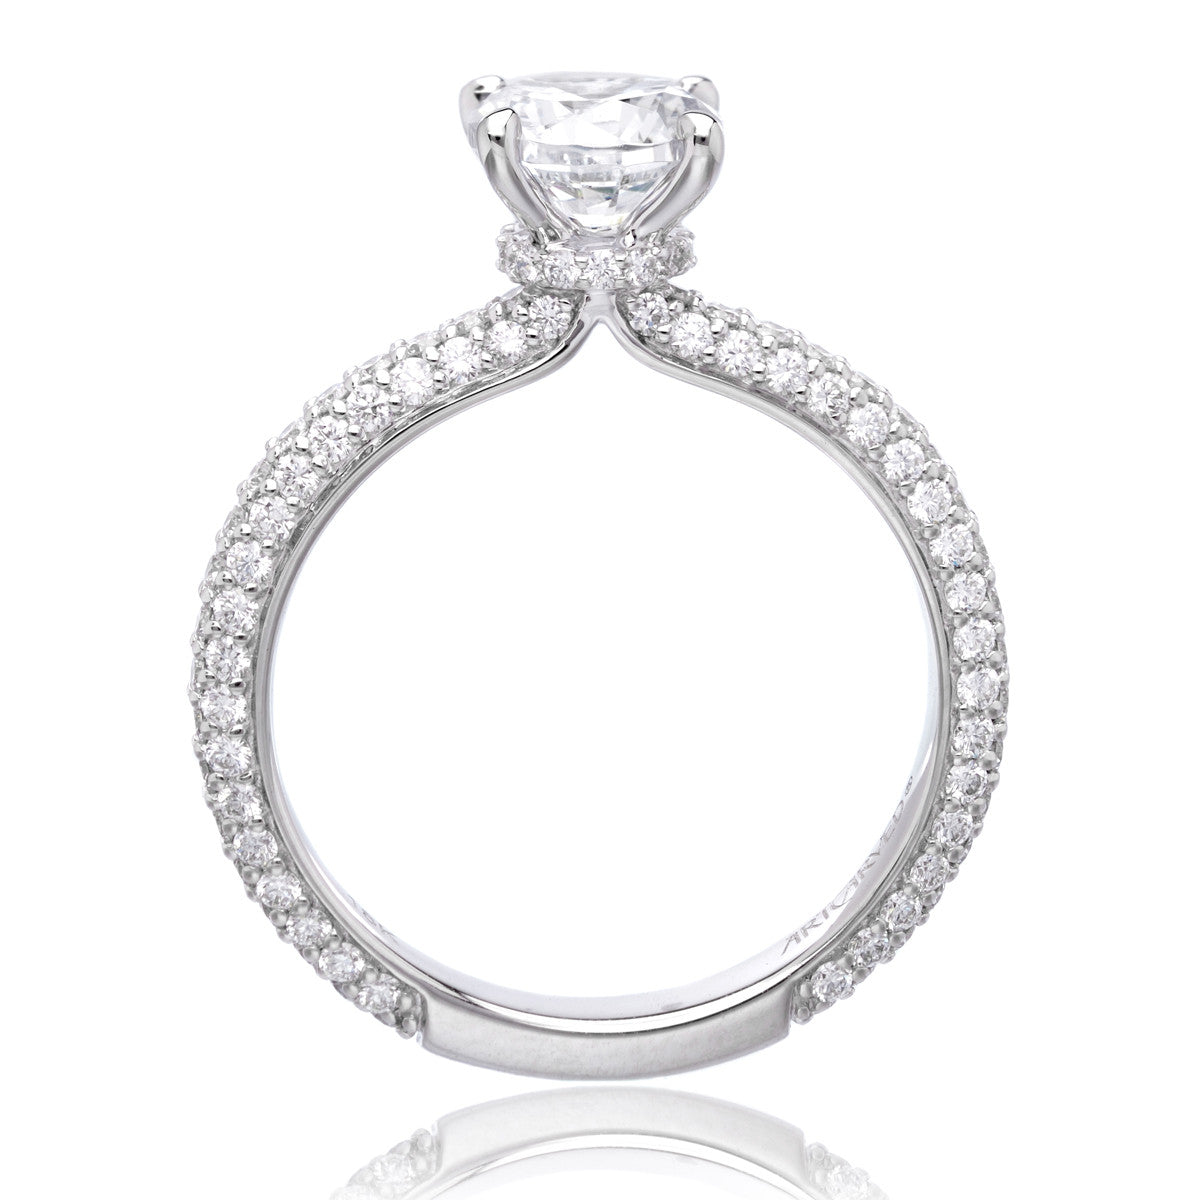 18K White Gold Helena Engagement Ring Setting